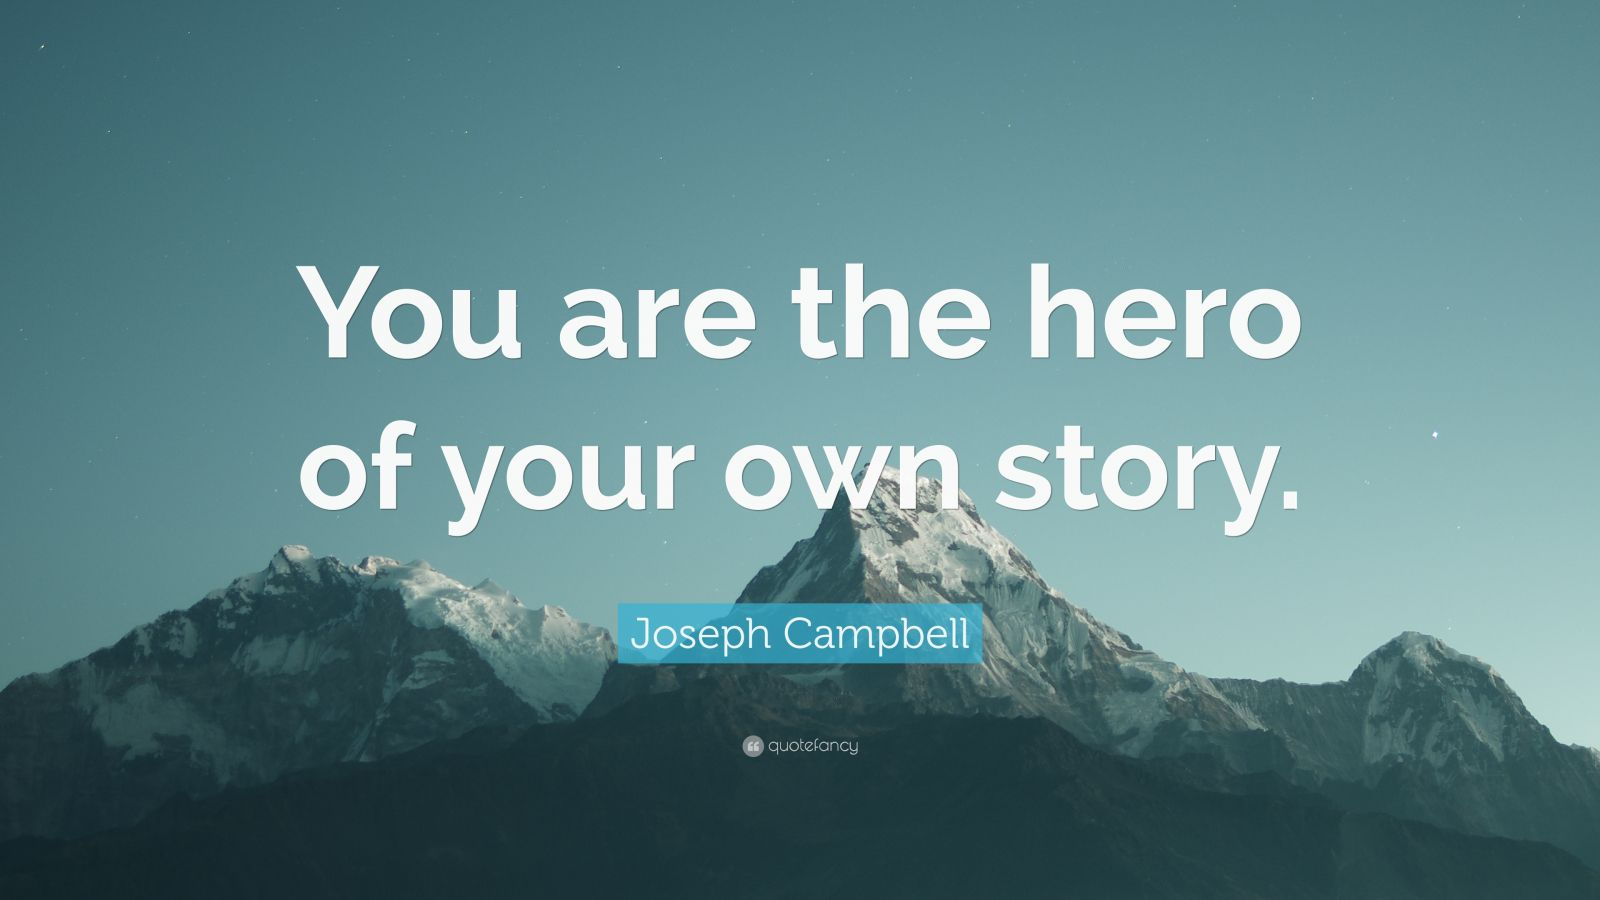 Dalai Lama Quotes Wallpaper Joseph Campbell Quote You Are The Hero Of Your Own Story